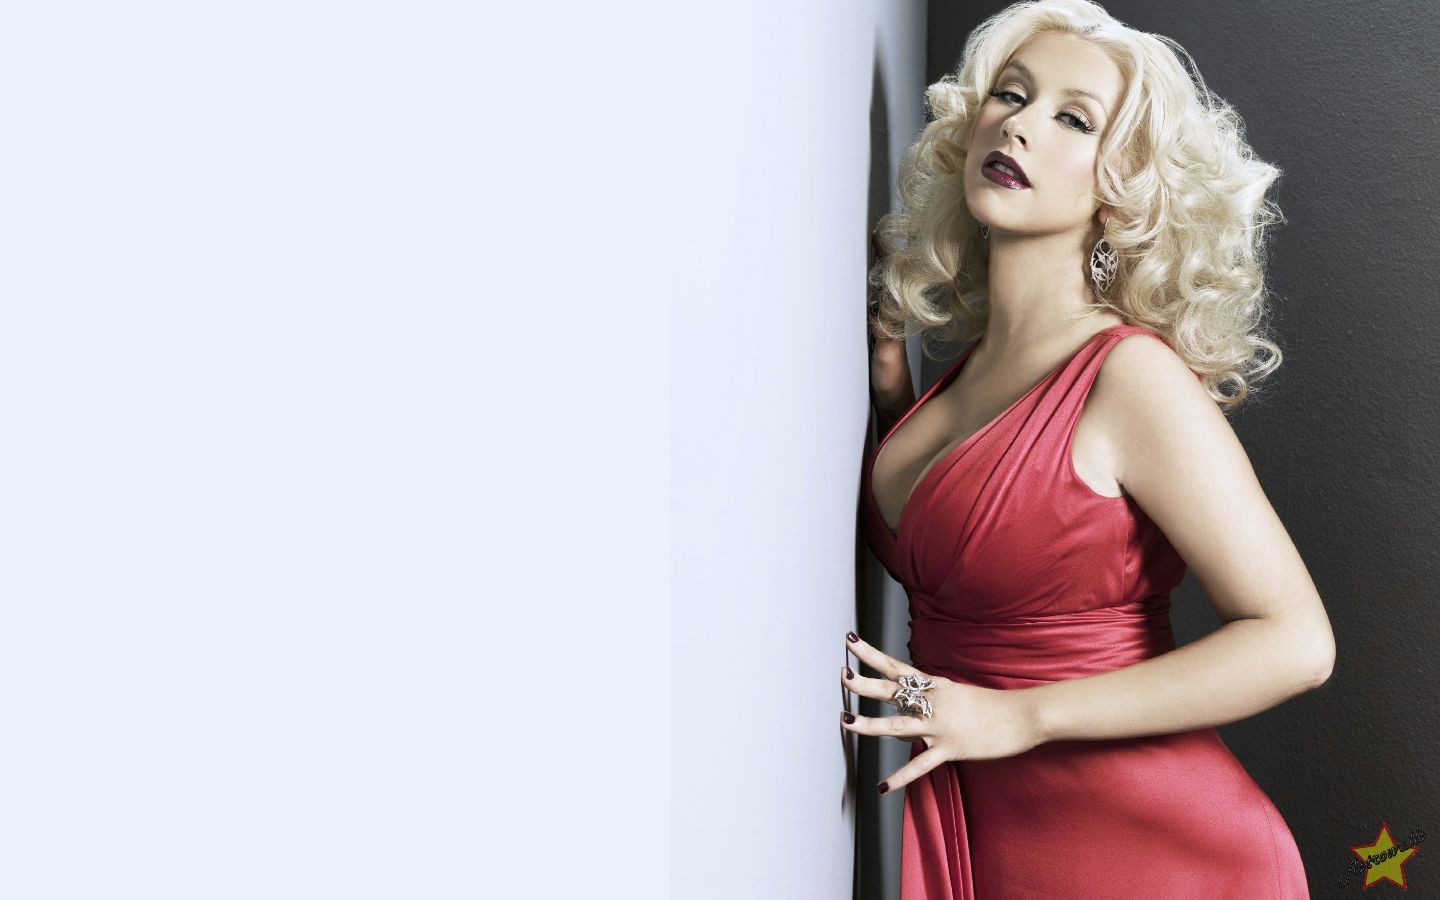 Christina Aguilera Wallpaper 1440x900 ID3482 1440x900